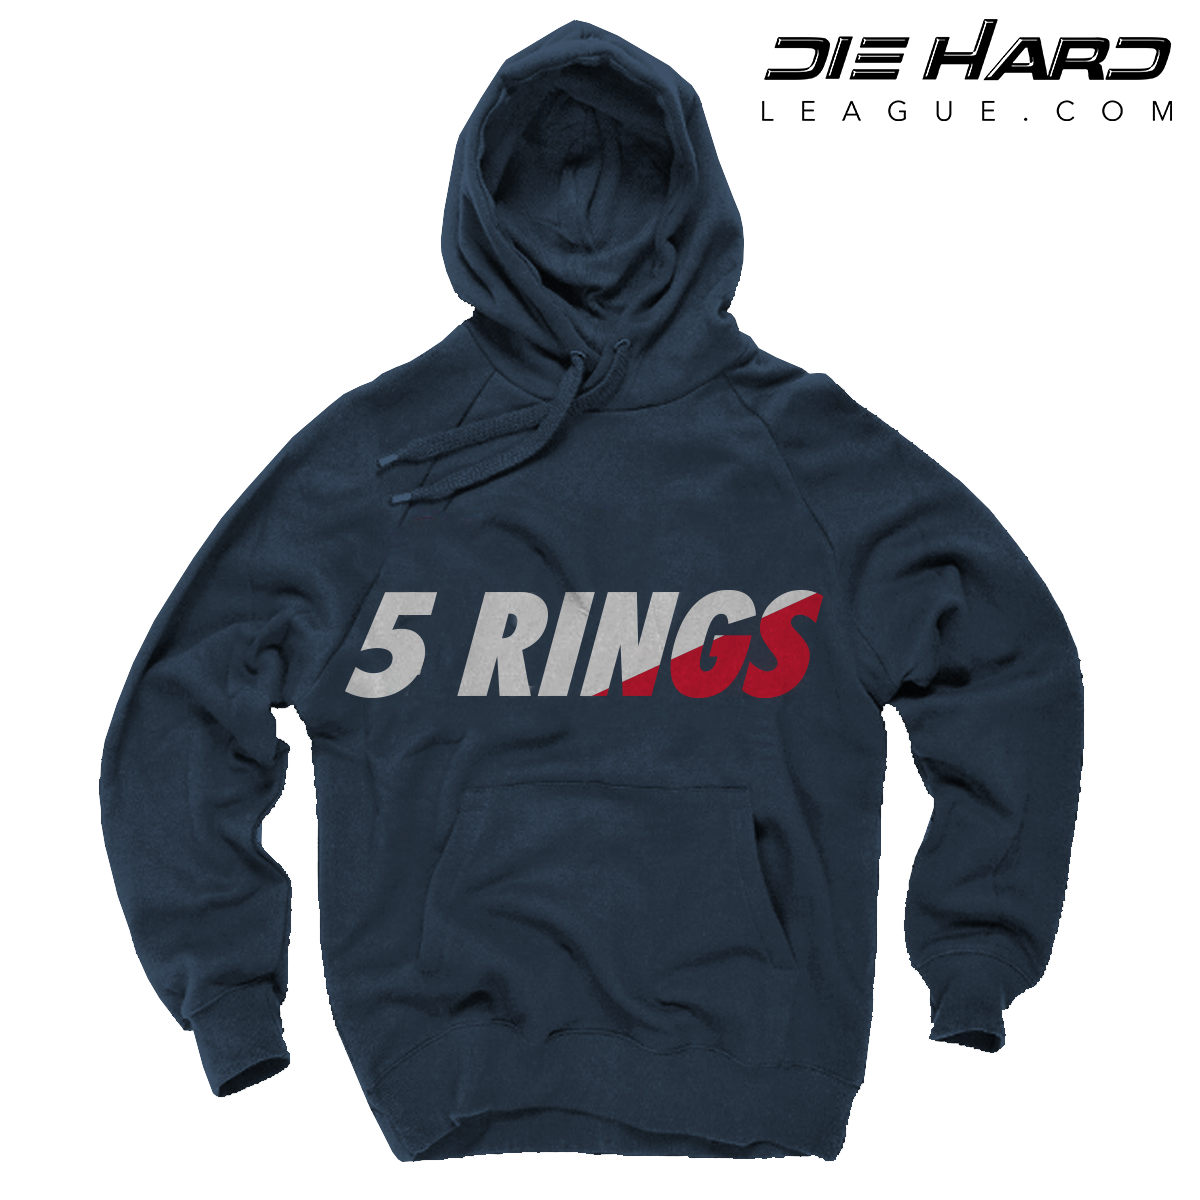 outlet store 676ff 13cc7 New England Patriots Hoodie - 5 Rings Navy Sweater